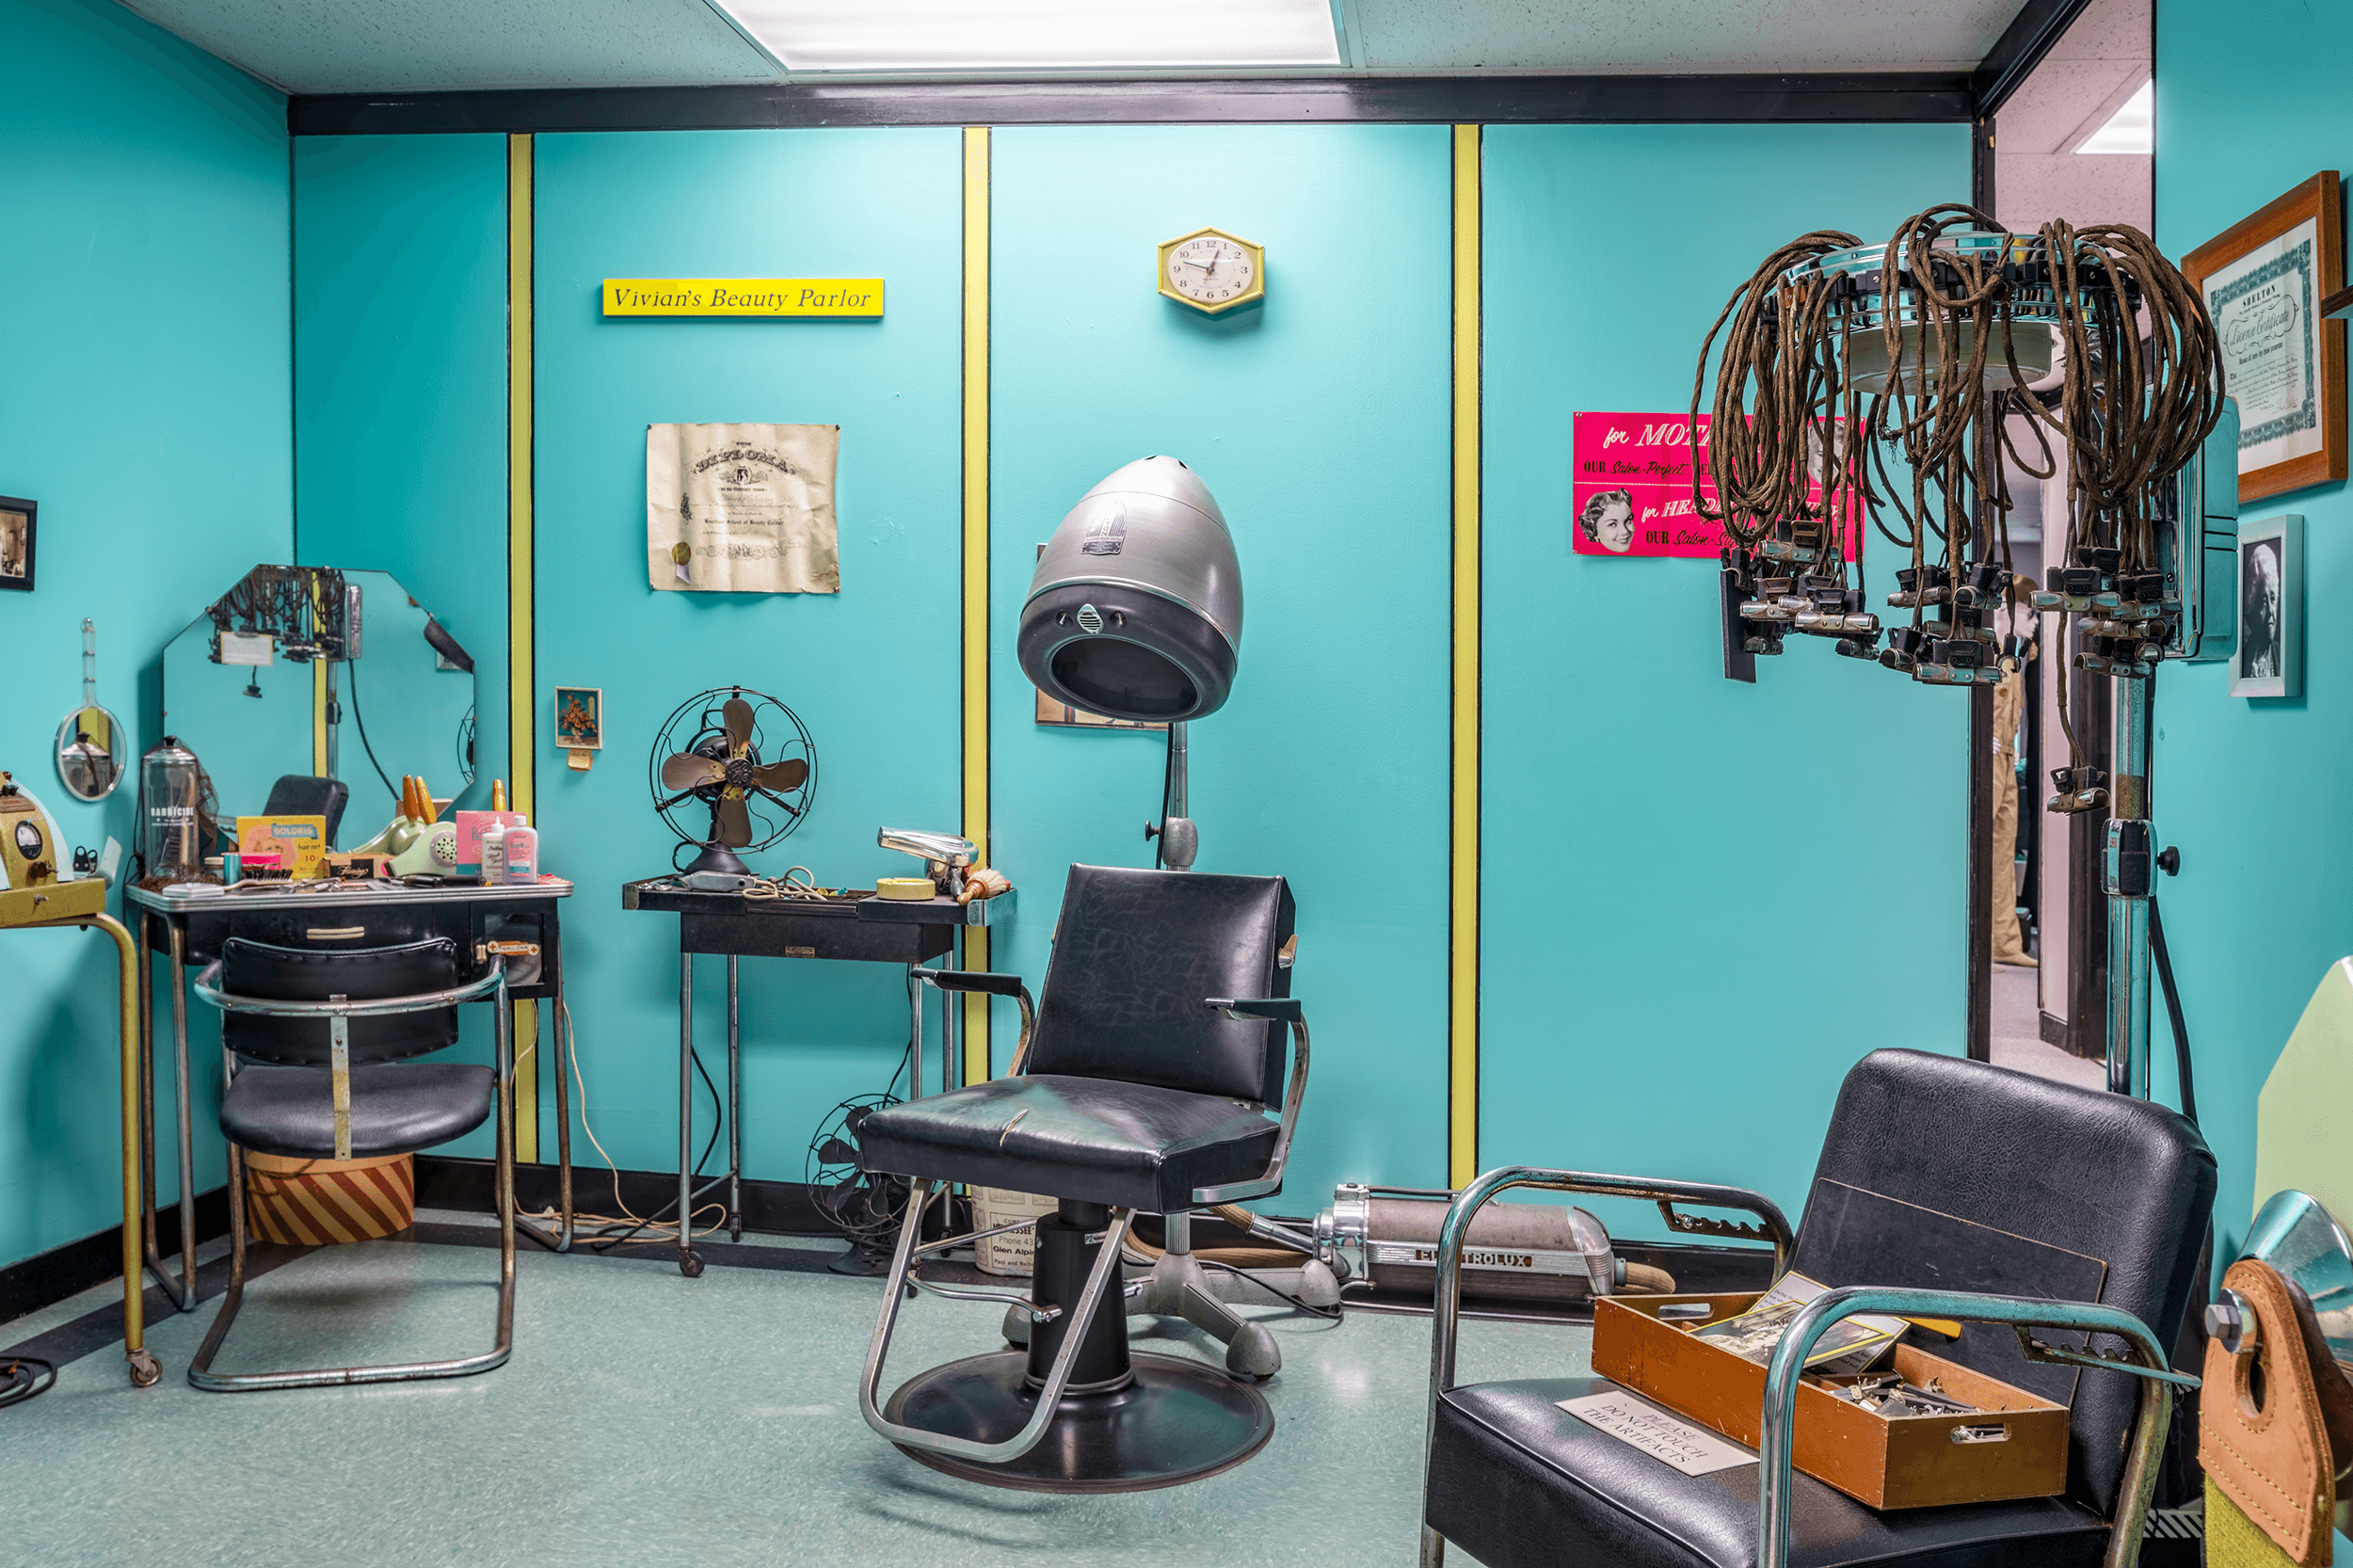 Another room features  Vivian's Beauty Parlor  from the 1950s with a vintage electric perm machine (pictured on the right).